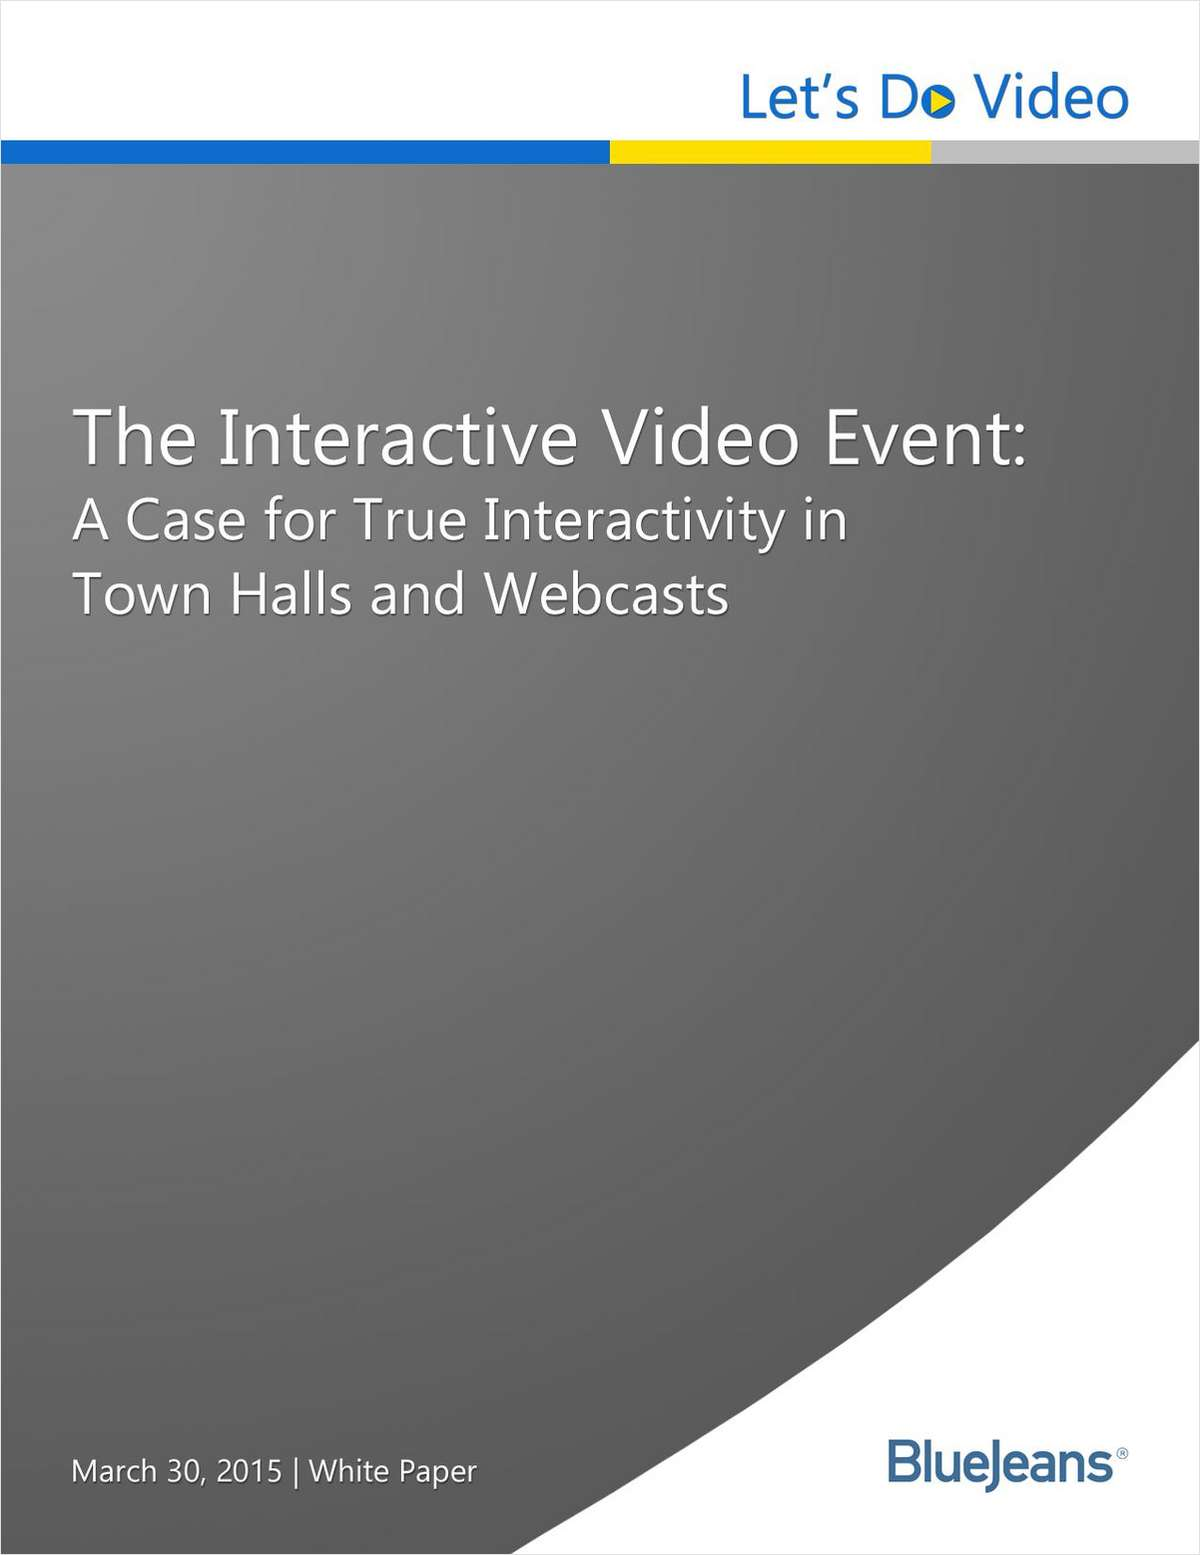 The Interactive Video Event: A Case for True Interactivity in Town Halls and Webcasts